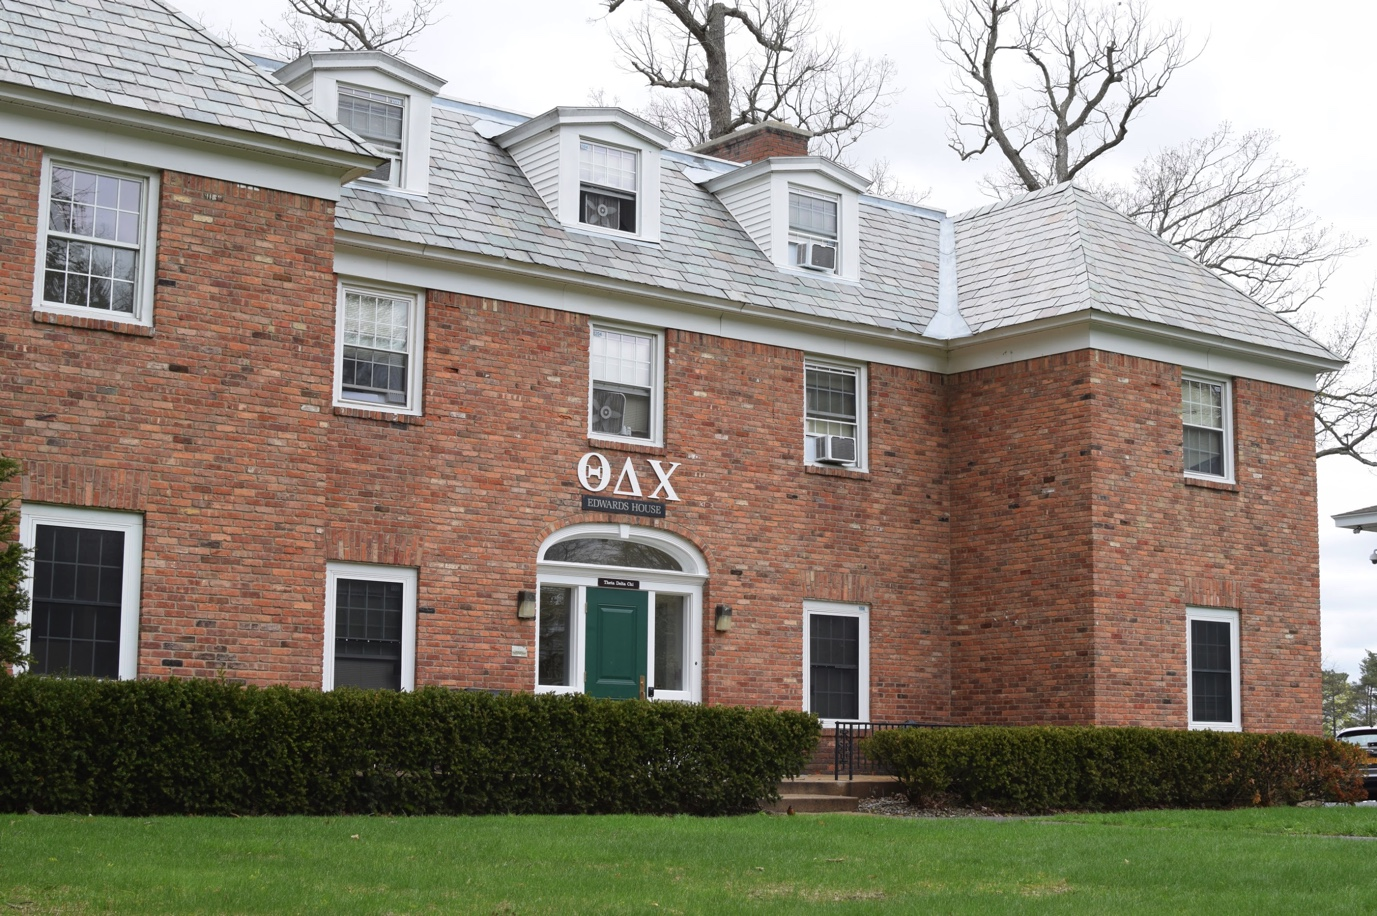 The Theta Delta Chi (TD Chi) house on Union's campus. Photo by Alex Appel.